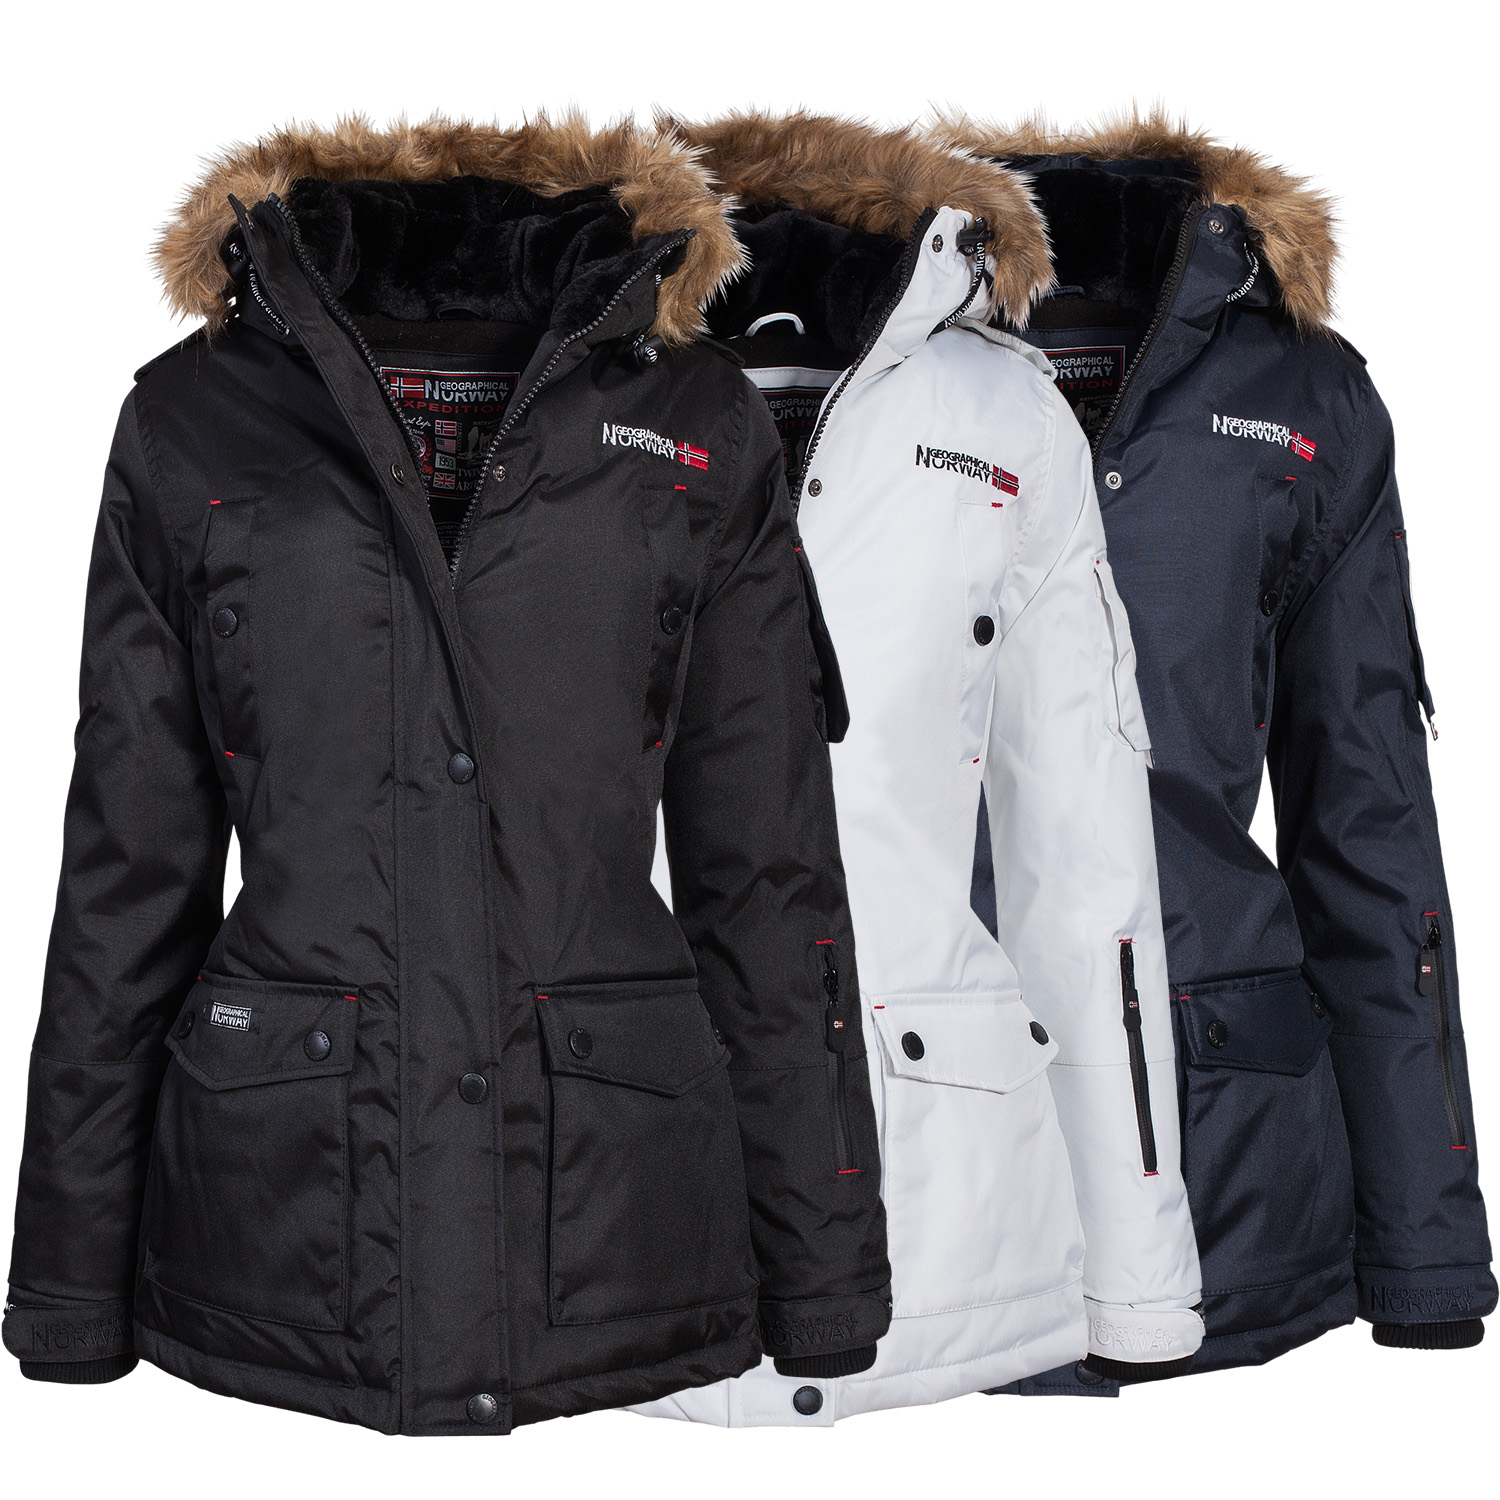 Outdoor winterjacken fur damen